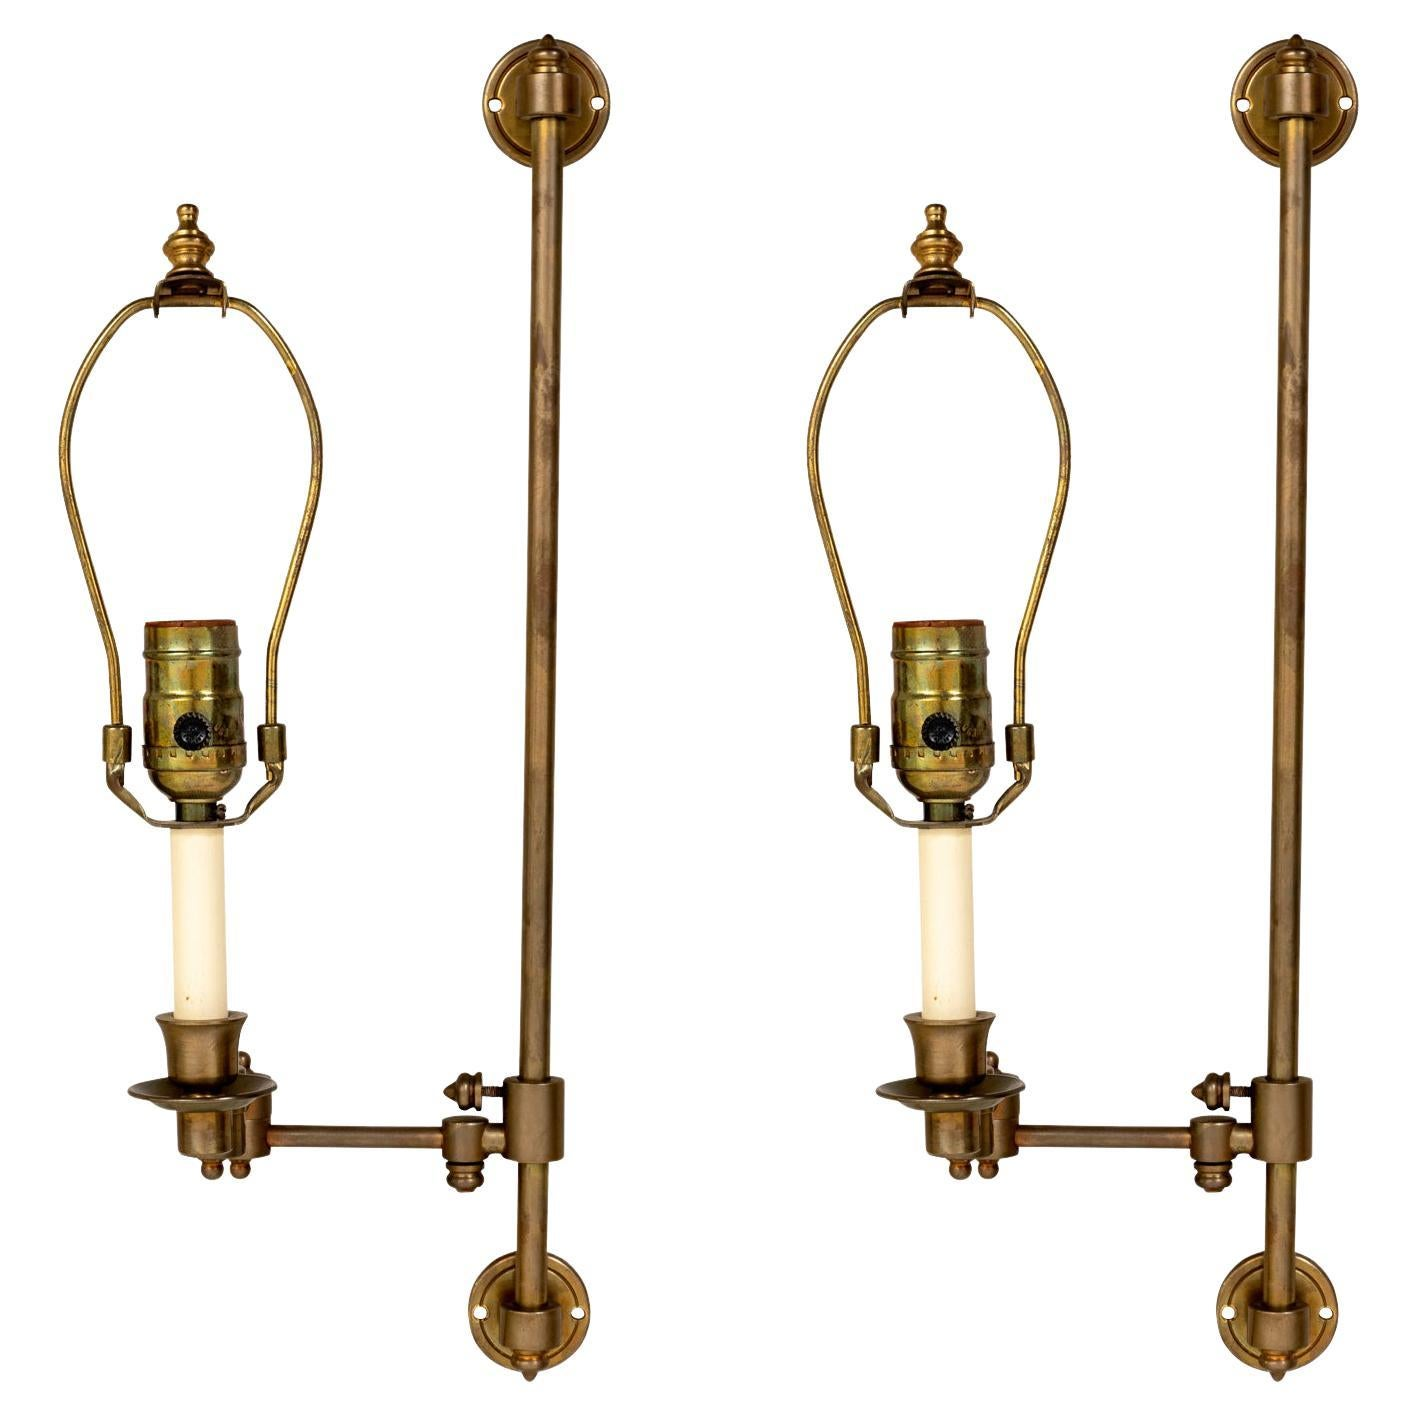 Brass Swing Arm Library Sconces